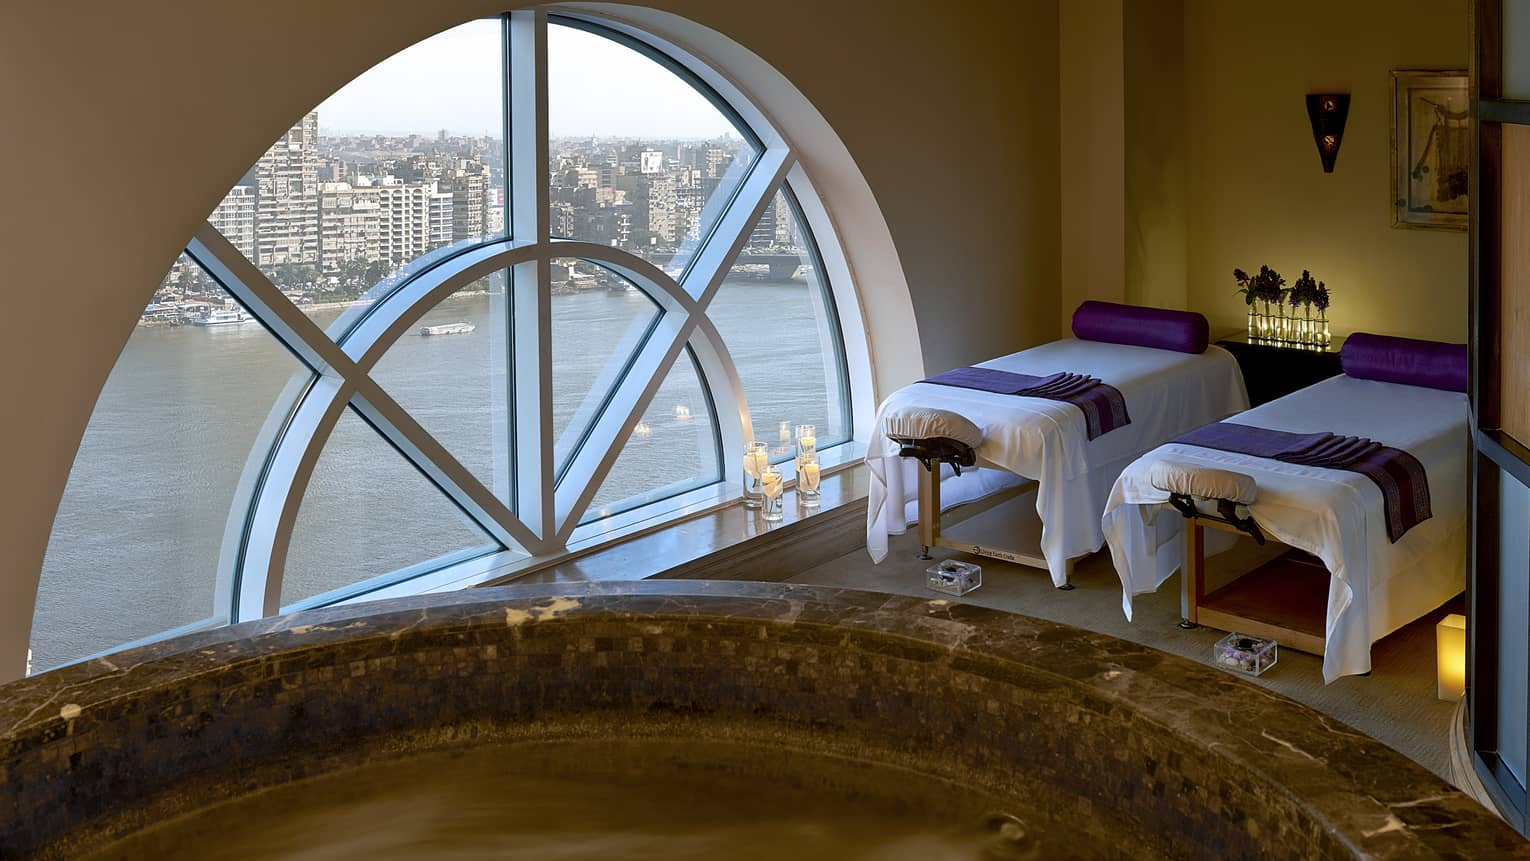 Two massage tables side-by-side in couples spa suite by lare crescent-shaped window overlooking Nile